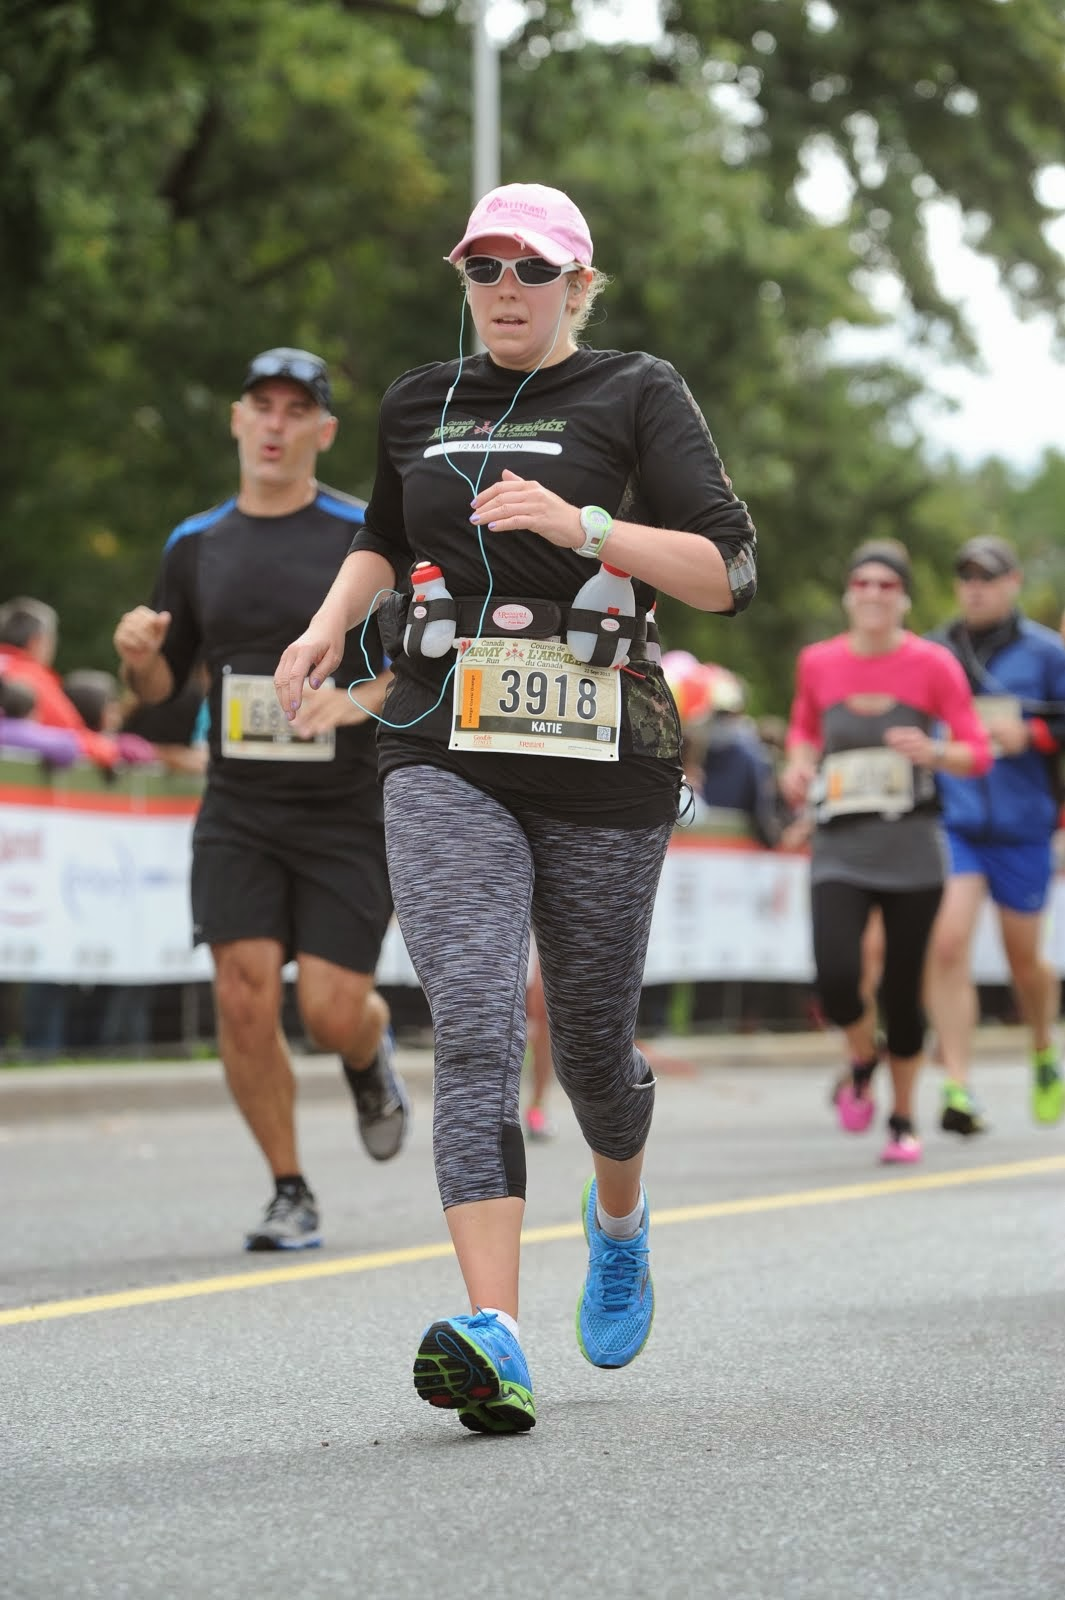 Army Run Half Marathon (1:54:35)